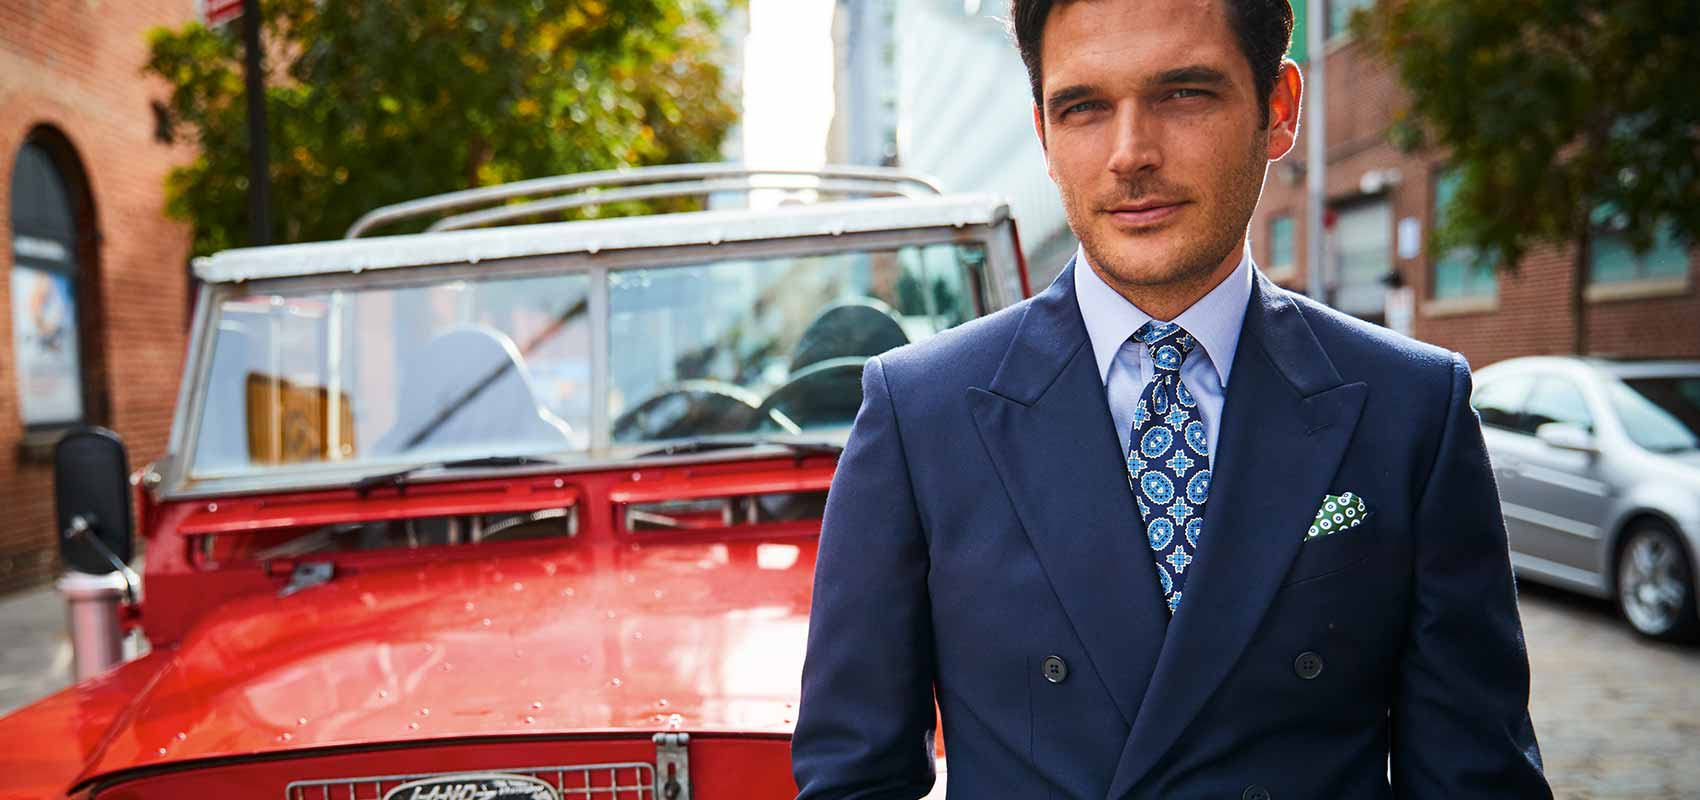 Charles Tyrwhitt suits jackets